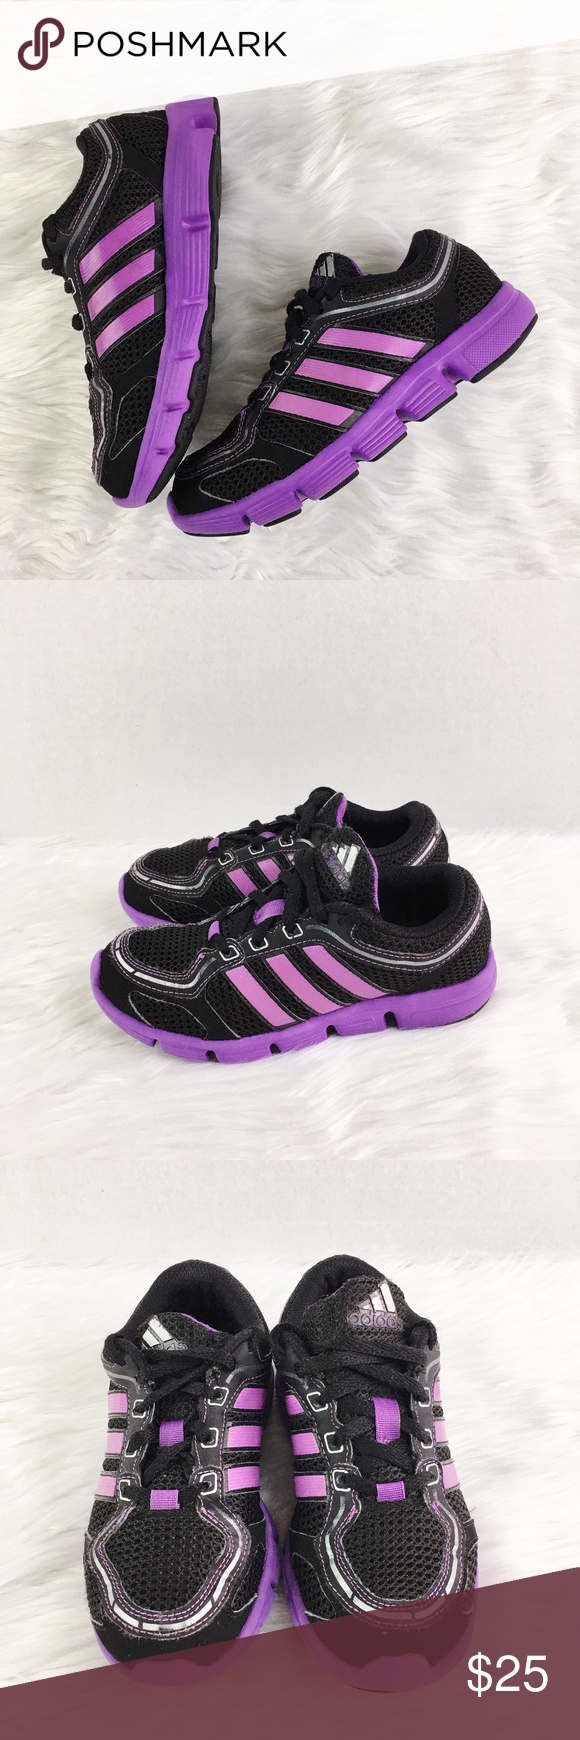 Adidas Climacool Running Shoes Adidas Climacool Please view photos ...